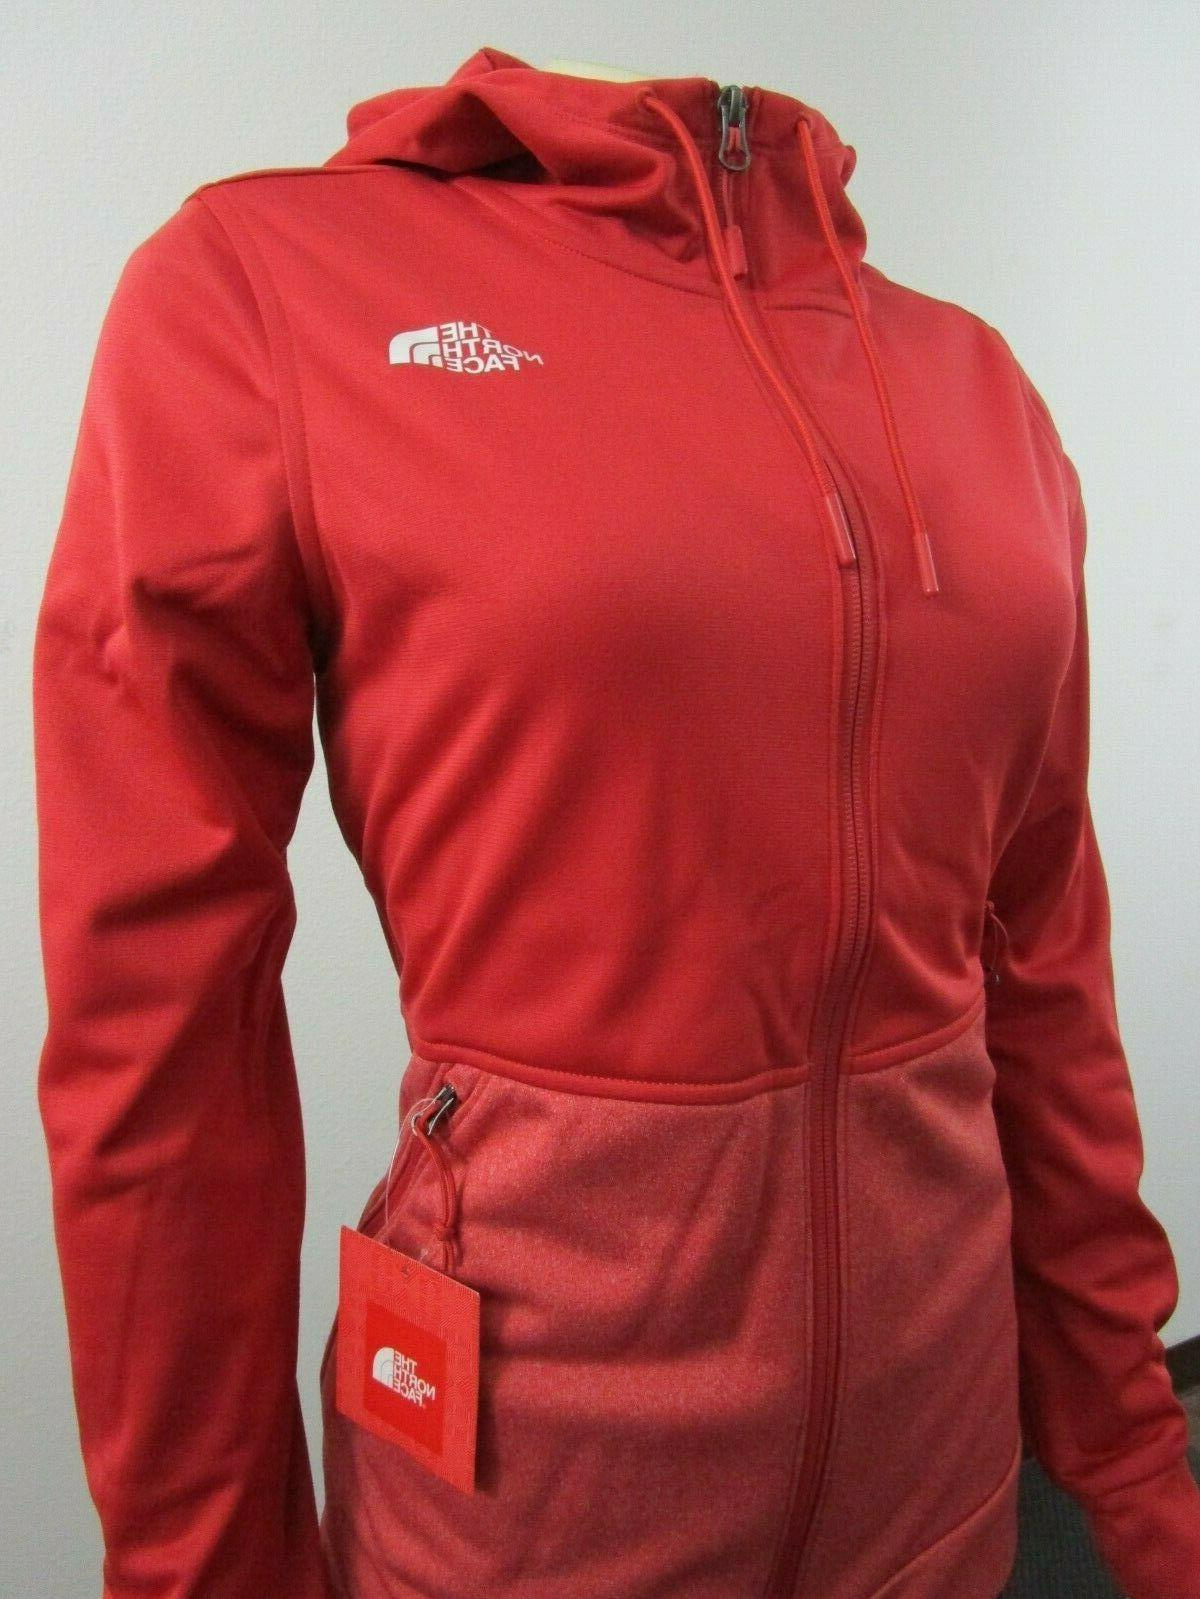 NWT Face TNF 100 Tenacious Hoodie Fleece - Red